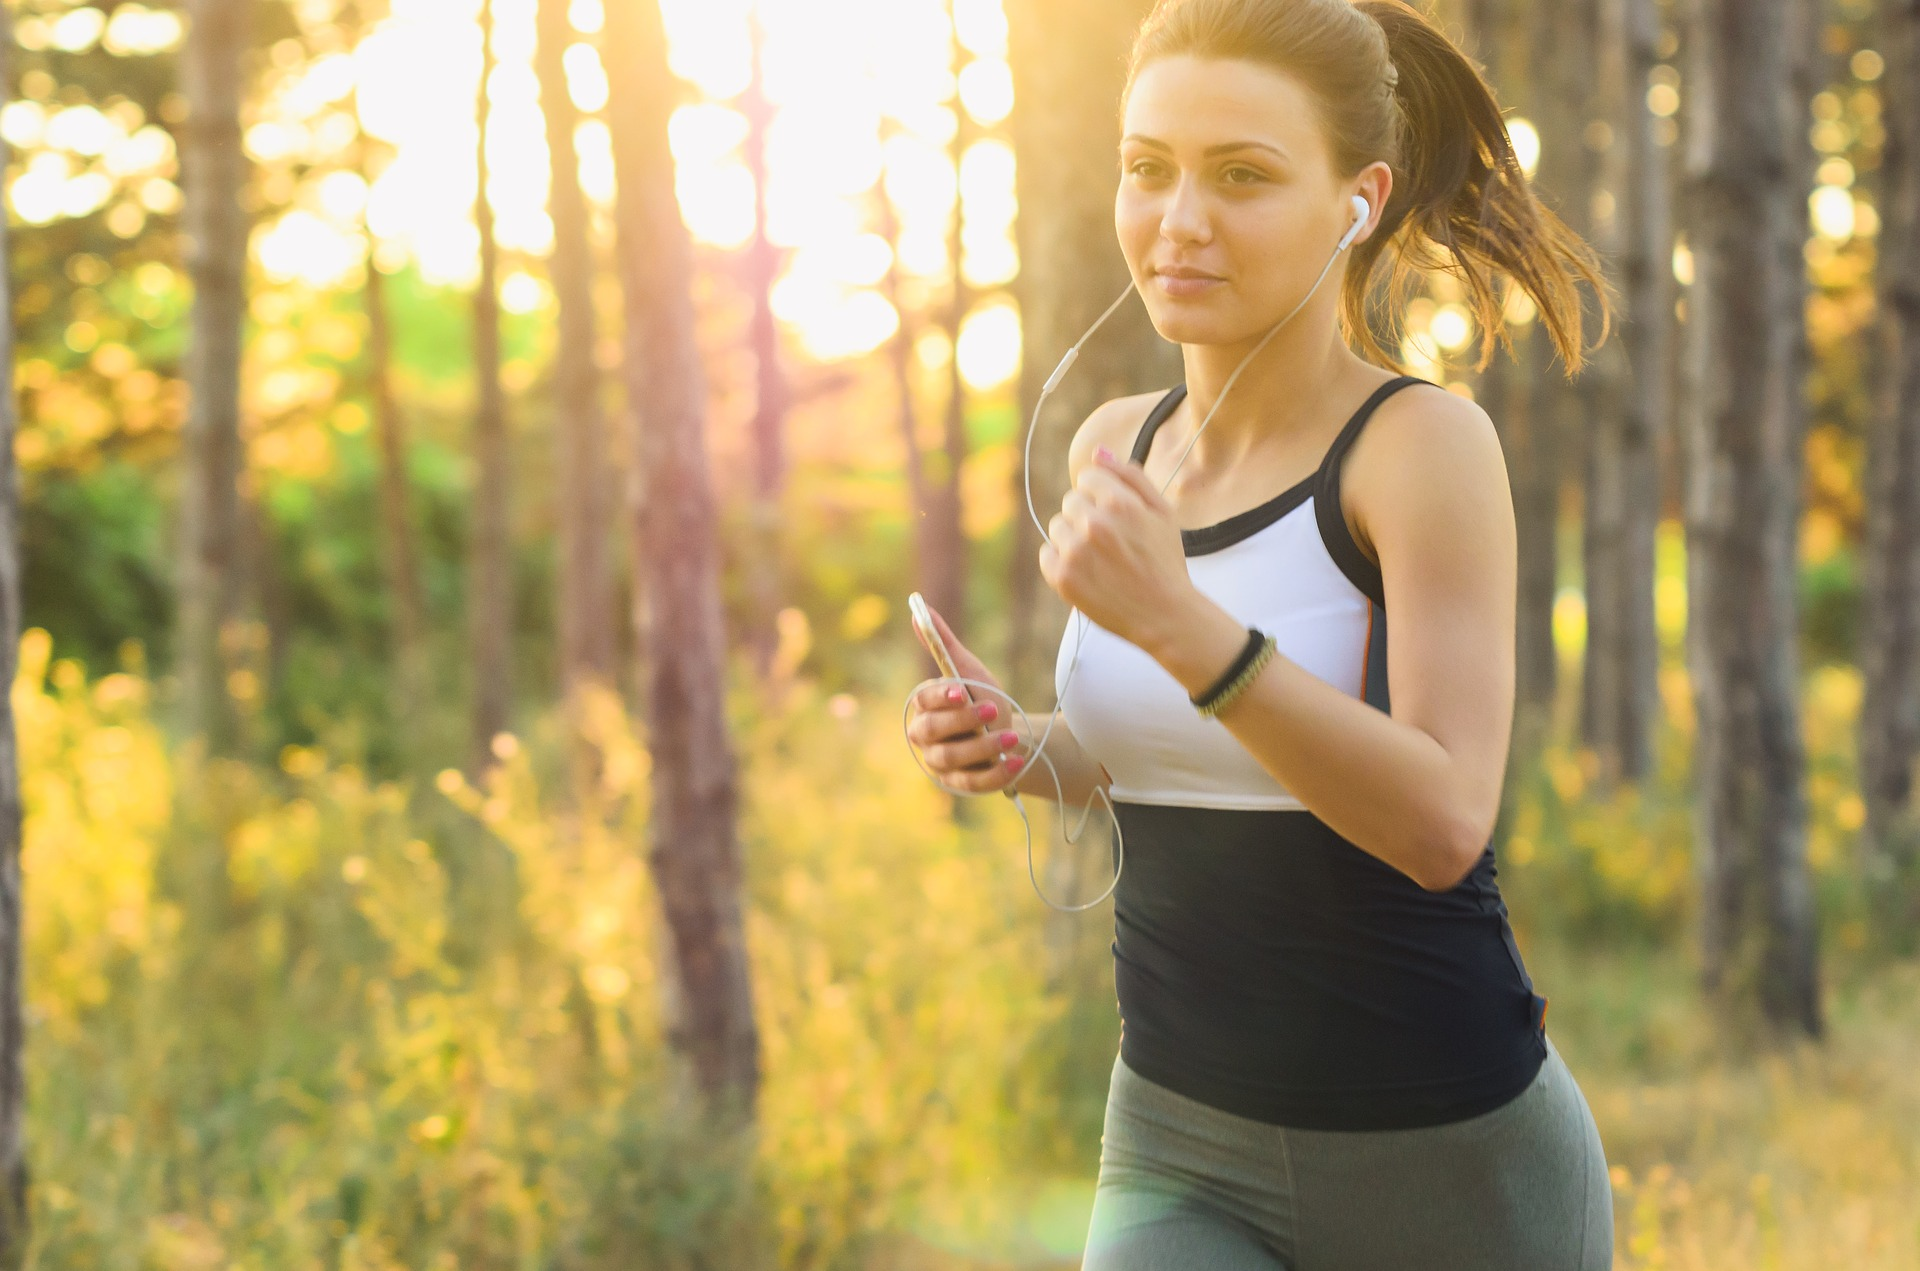 Multiple studies have looked into the health benefits of short bouts of exercise